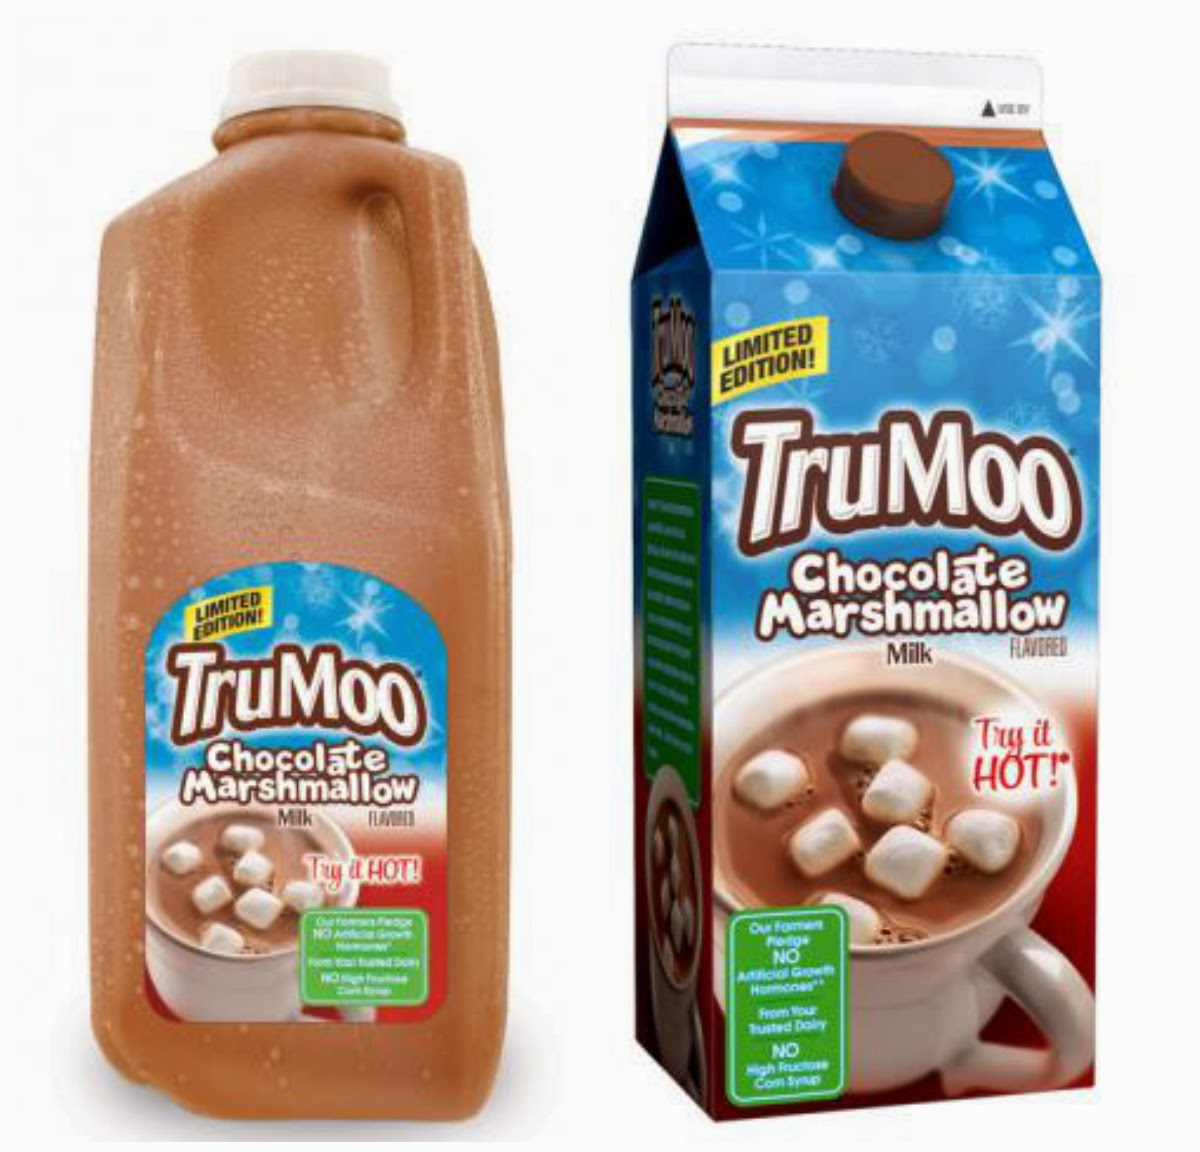 TruMoo Chocolate Marshmallow Milk - Like Smores in Your Mouth ...